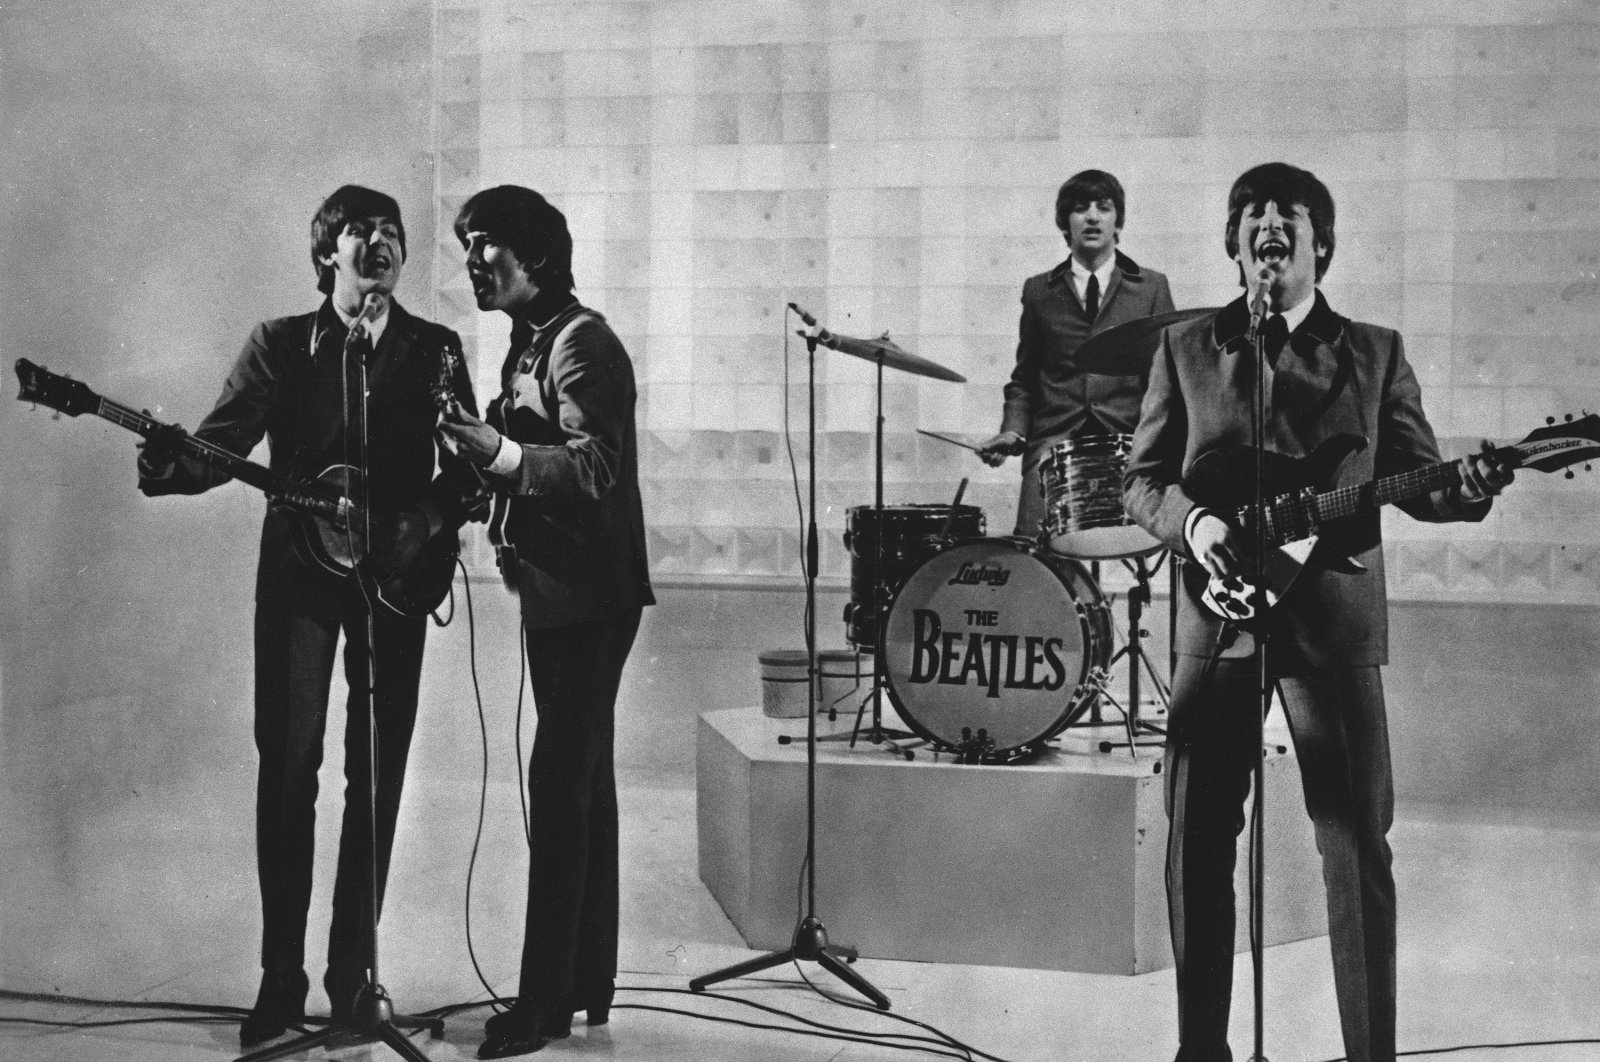 The Beatles, from left to right, Paul McCartney, George Harrison, Ringo Starr and John Lennon, are seen performing. (AP Photo)